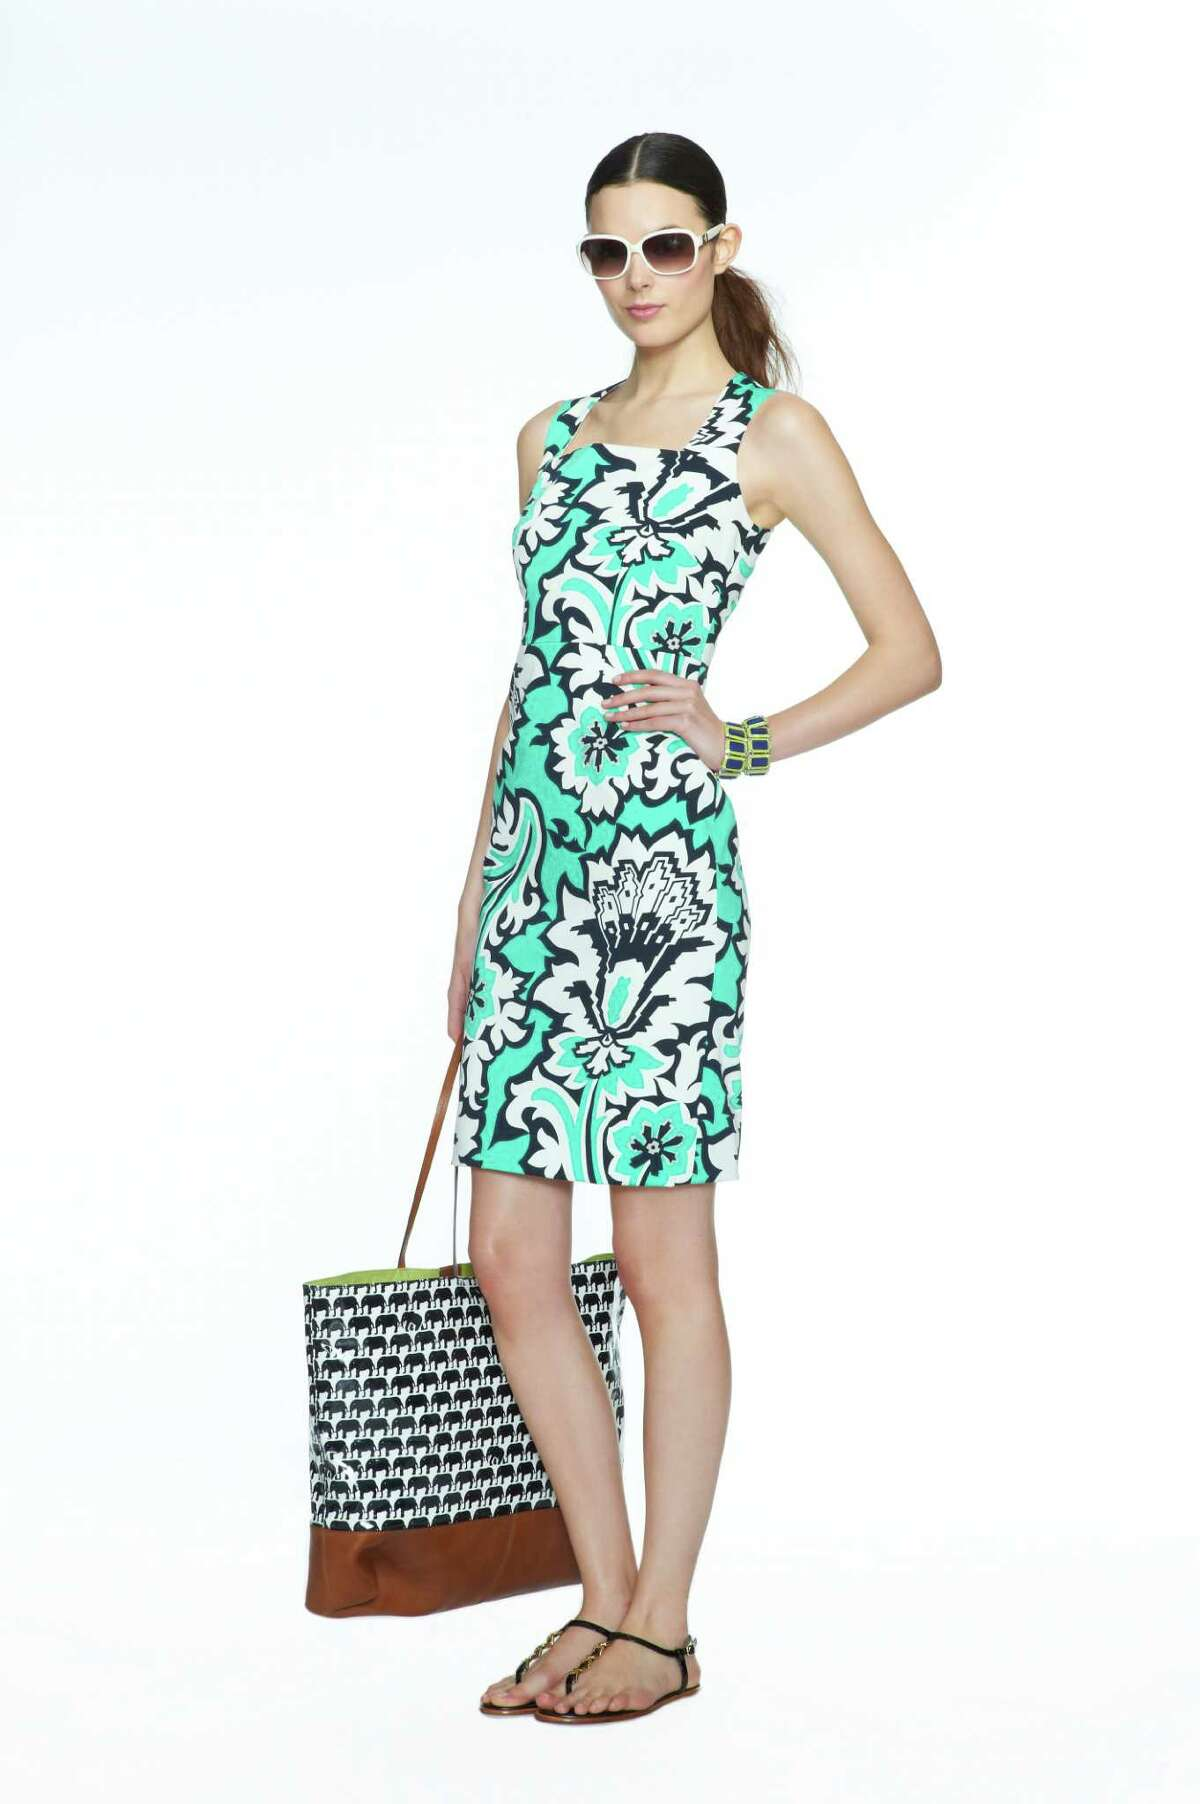 style: Banana Republic Milly Collection includes this Pool Green Eden Rock Printed Dress, $130, Ivory Madeline Sunglasses, $98; Lime/Navy Two-Tone Stretch Bracelet, $35 each; Navy/White Elephant Print Tote, $130; Black Patent Leather Sandal, $89; all at Banana Republic stores and online.